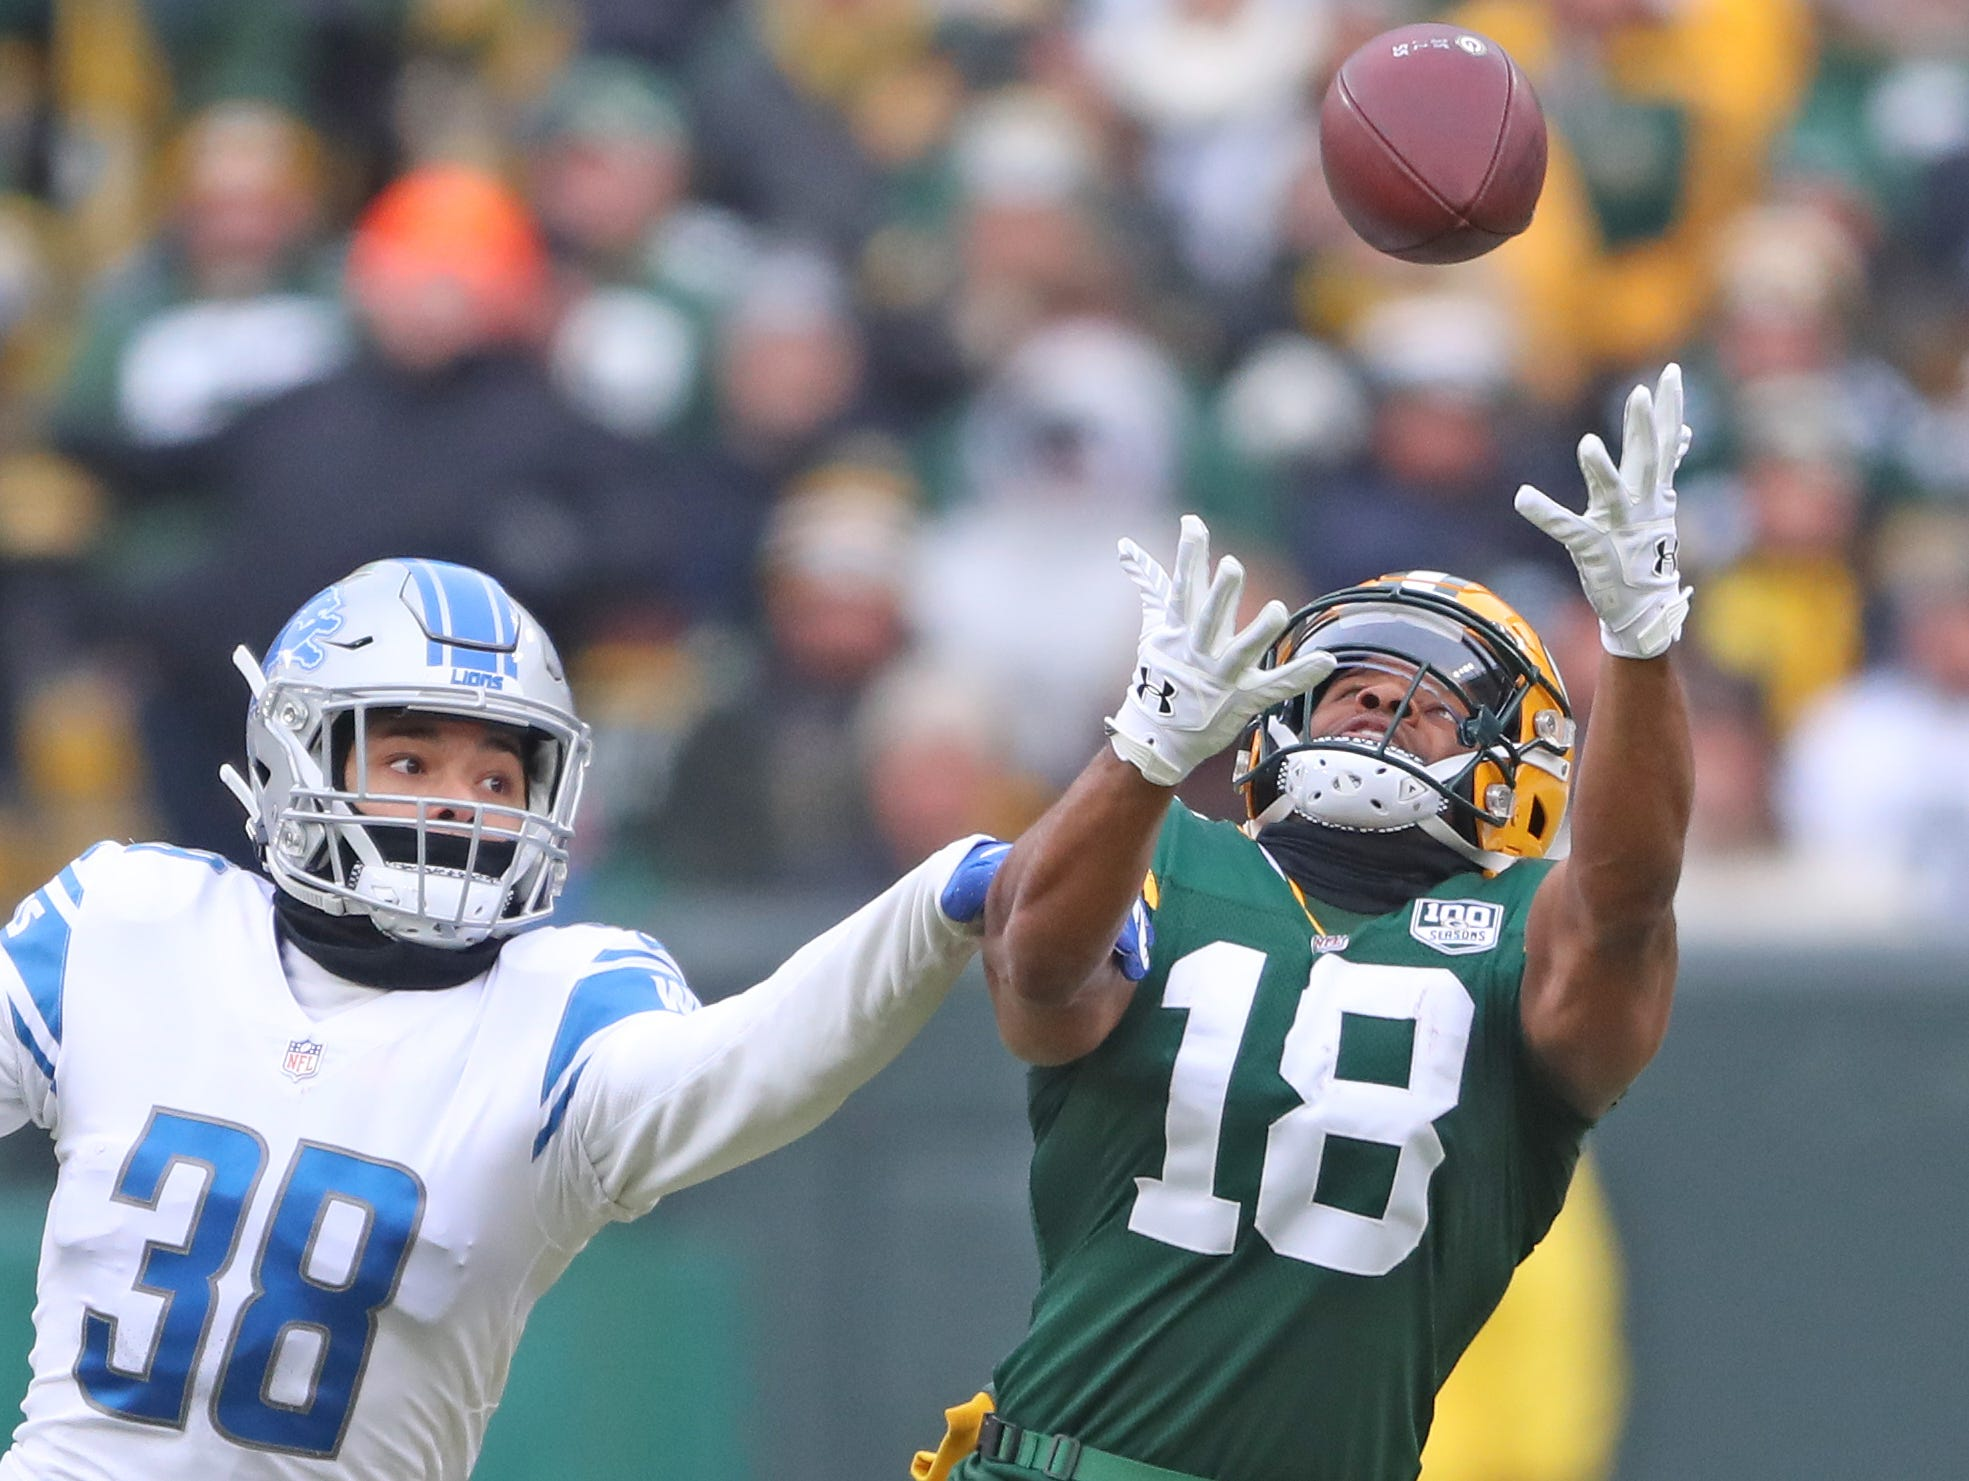 Green Bay Packers wide receiver Randall Cobb (18) just misses a catch against the Detroit Lions at Lambeau Field Sunday, December 30, 2018 in Green Bay, Wis.